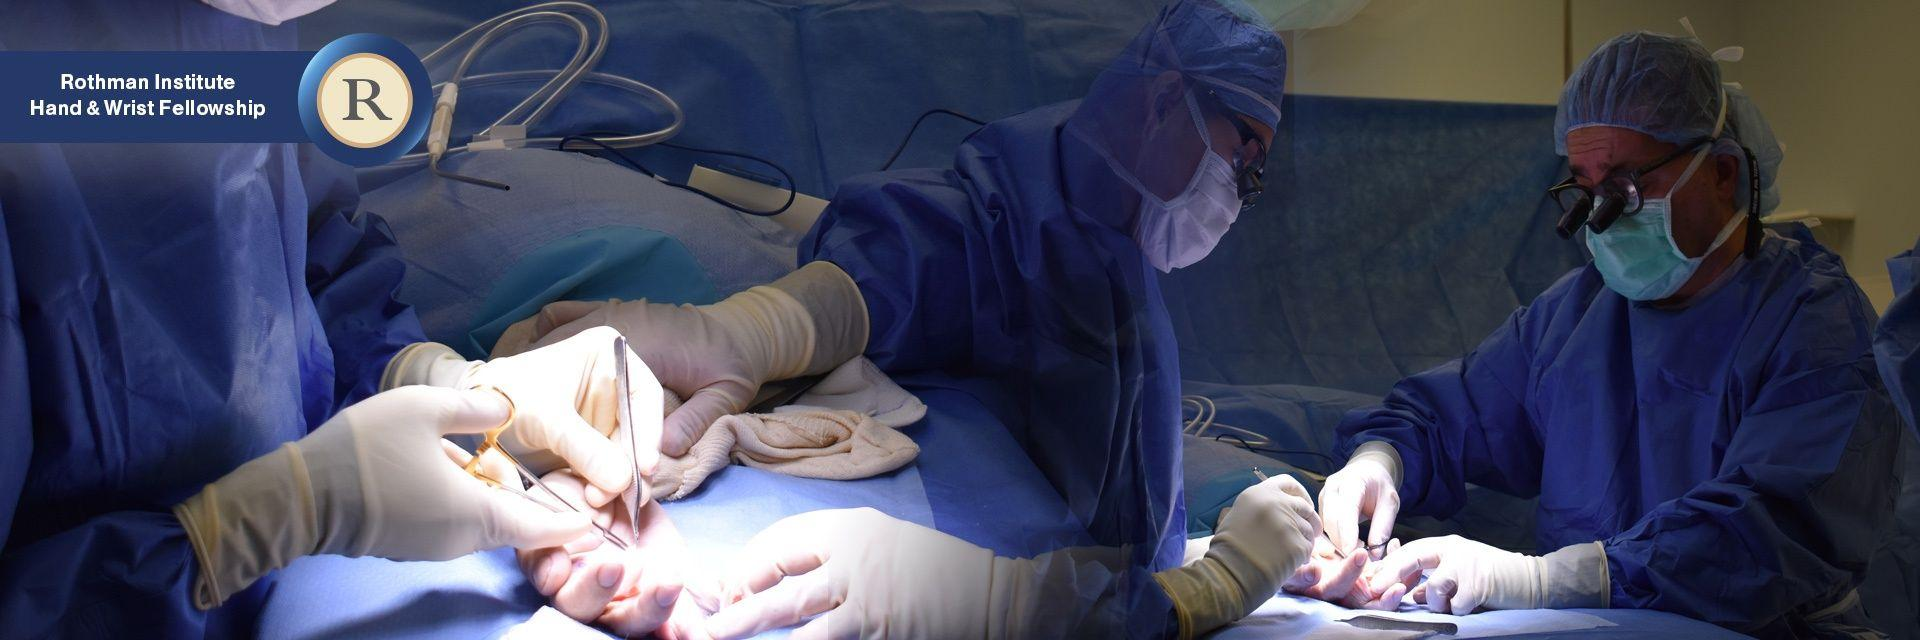 Hand and Upper Extremity Surgery Fellowship | Rothman